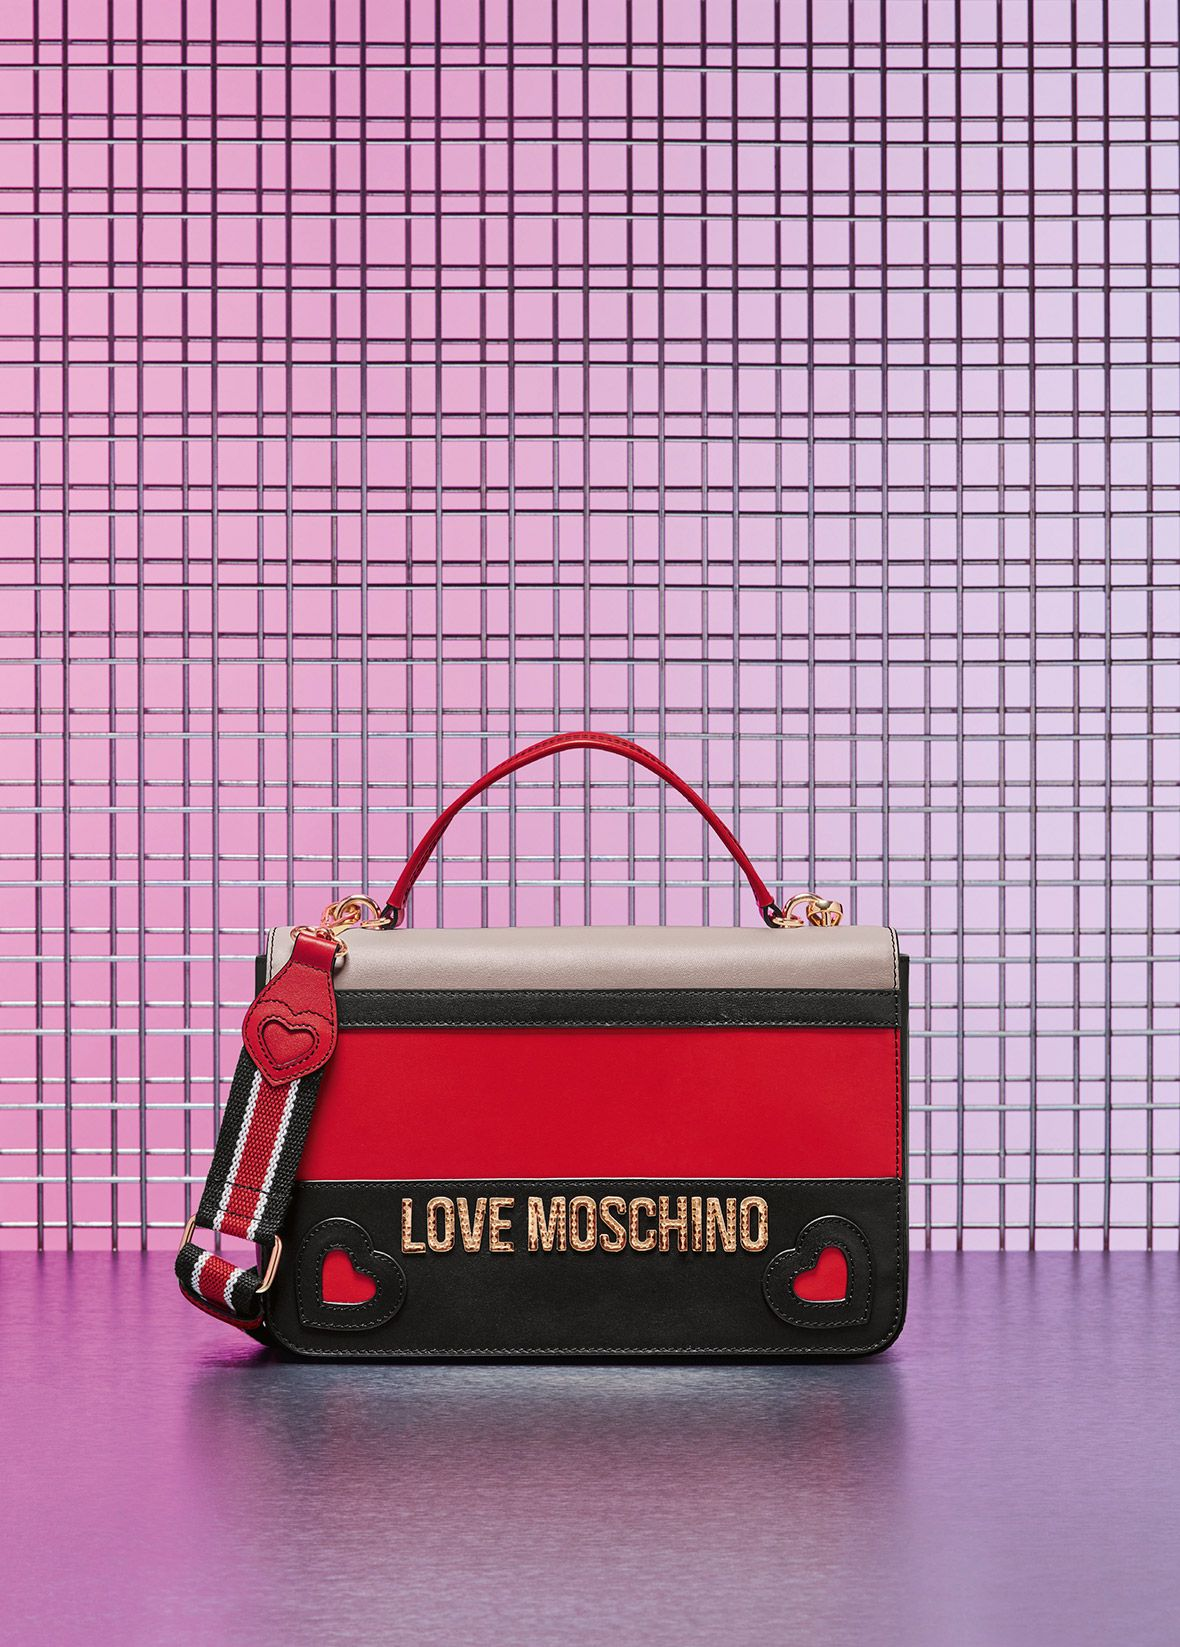 88ae4bbca5 Men's Clothing · Designer Handbags · Love Moschino Fall/Winter 2018  Accessories - See more on www.moschino.com